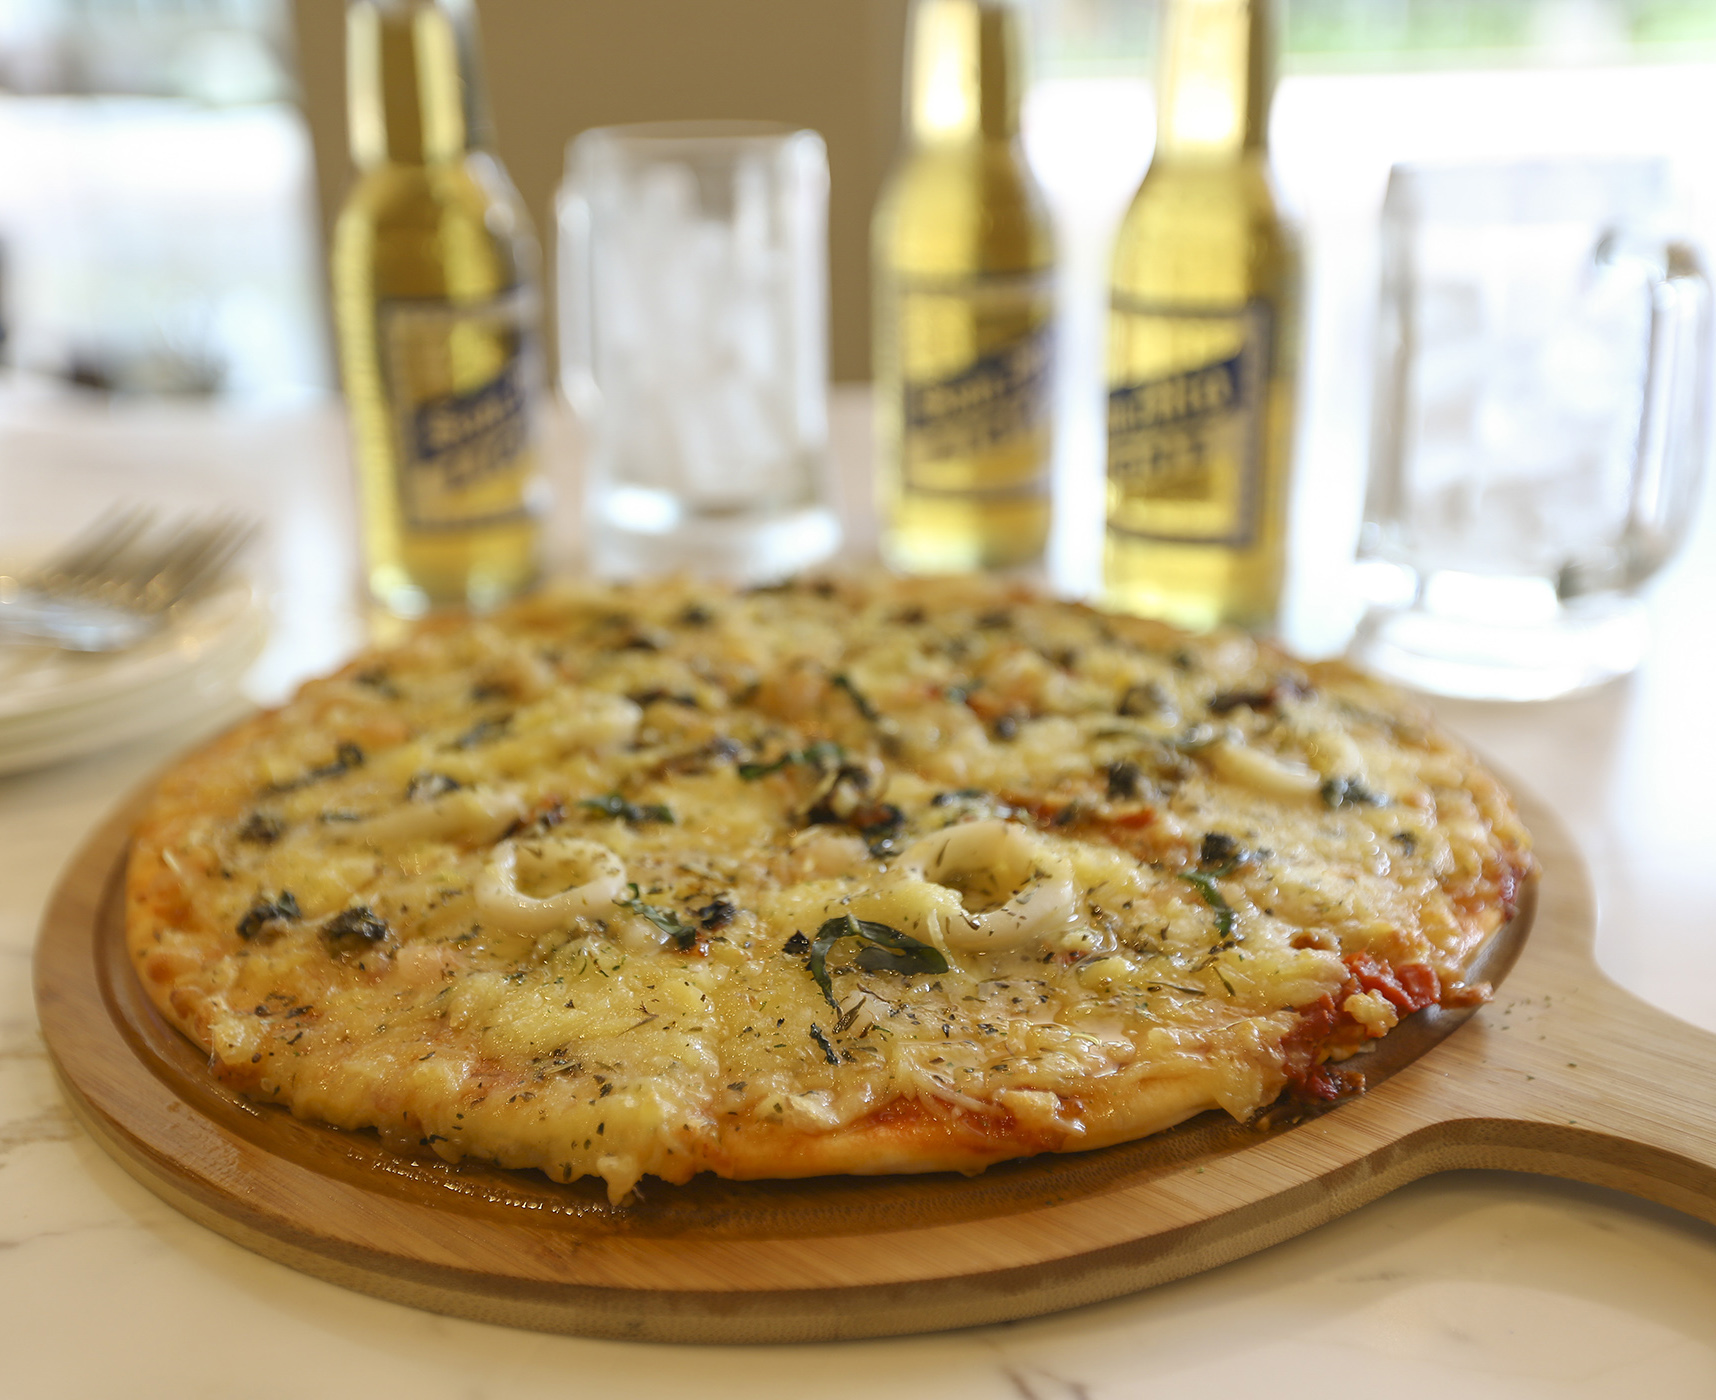 Pizza Pescatora + three bottles of local beer is one of the afforable bar chow and drink Pair & Square combos offered by the restobar